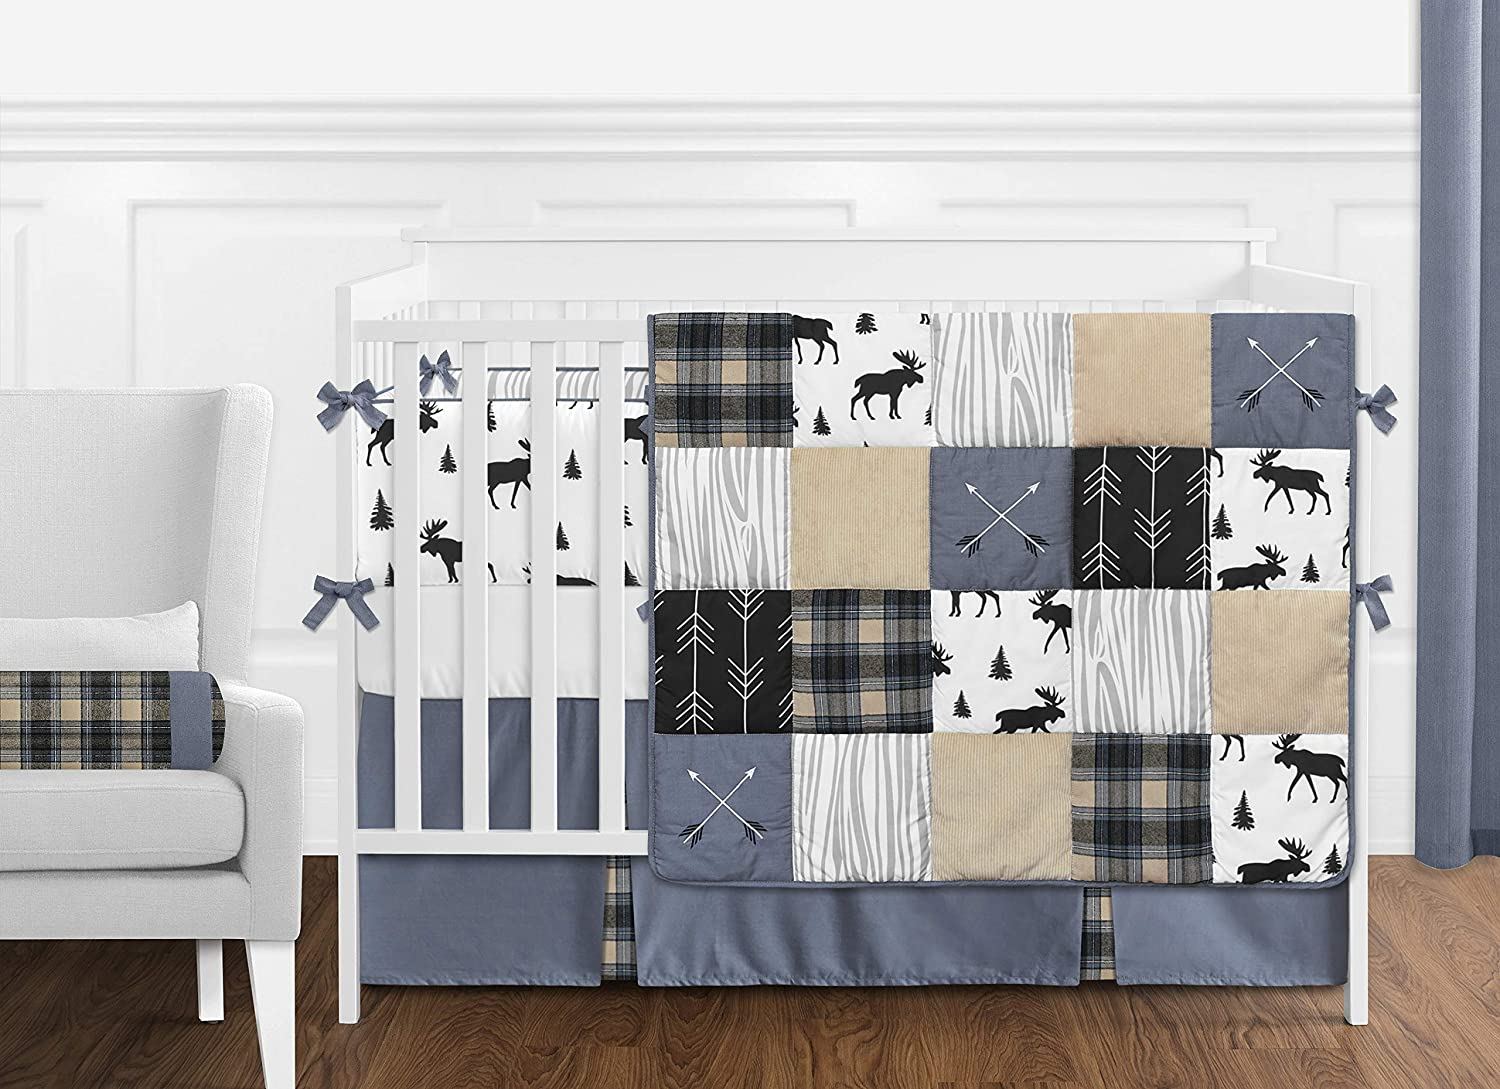 Sweet Jojo Designs Blue Tan Grey and Black Woodland Moose Wall Art Prints Room Decor for Baby Nursery Dream Big Little One and Kids for Rustic Patch Collection Set of 4